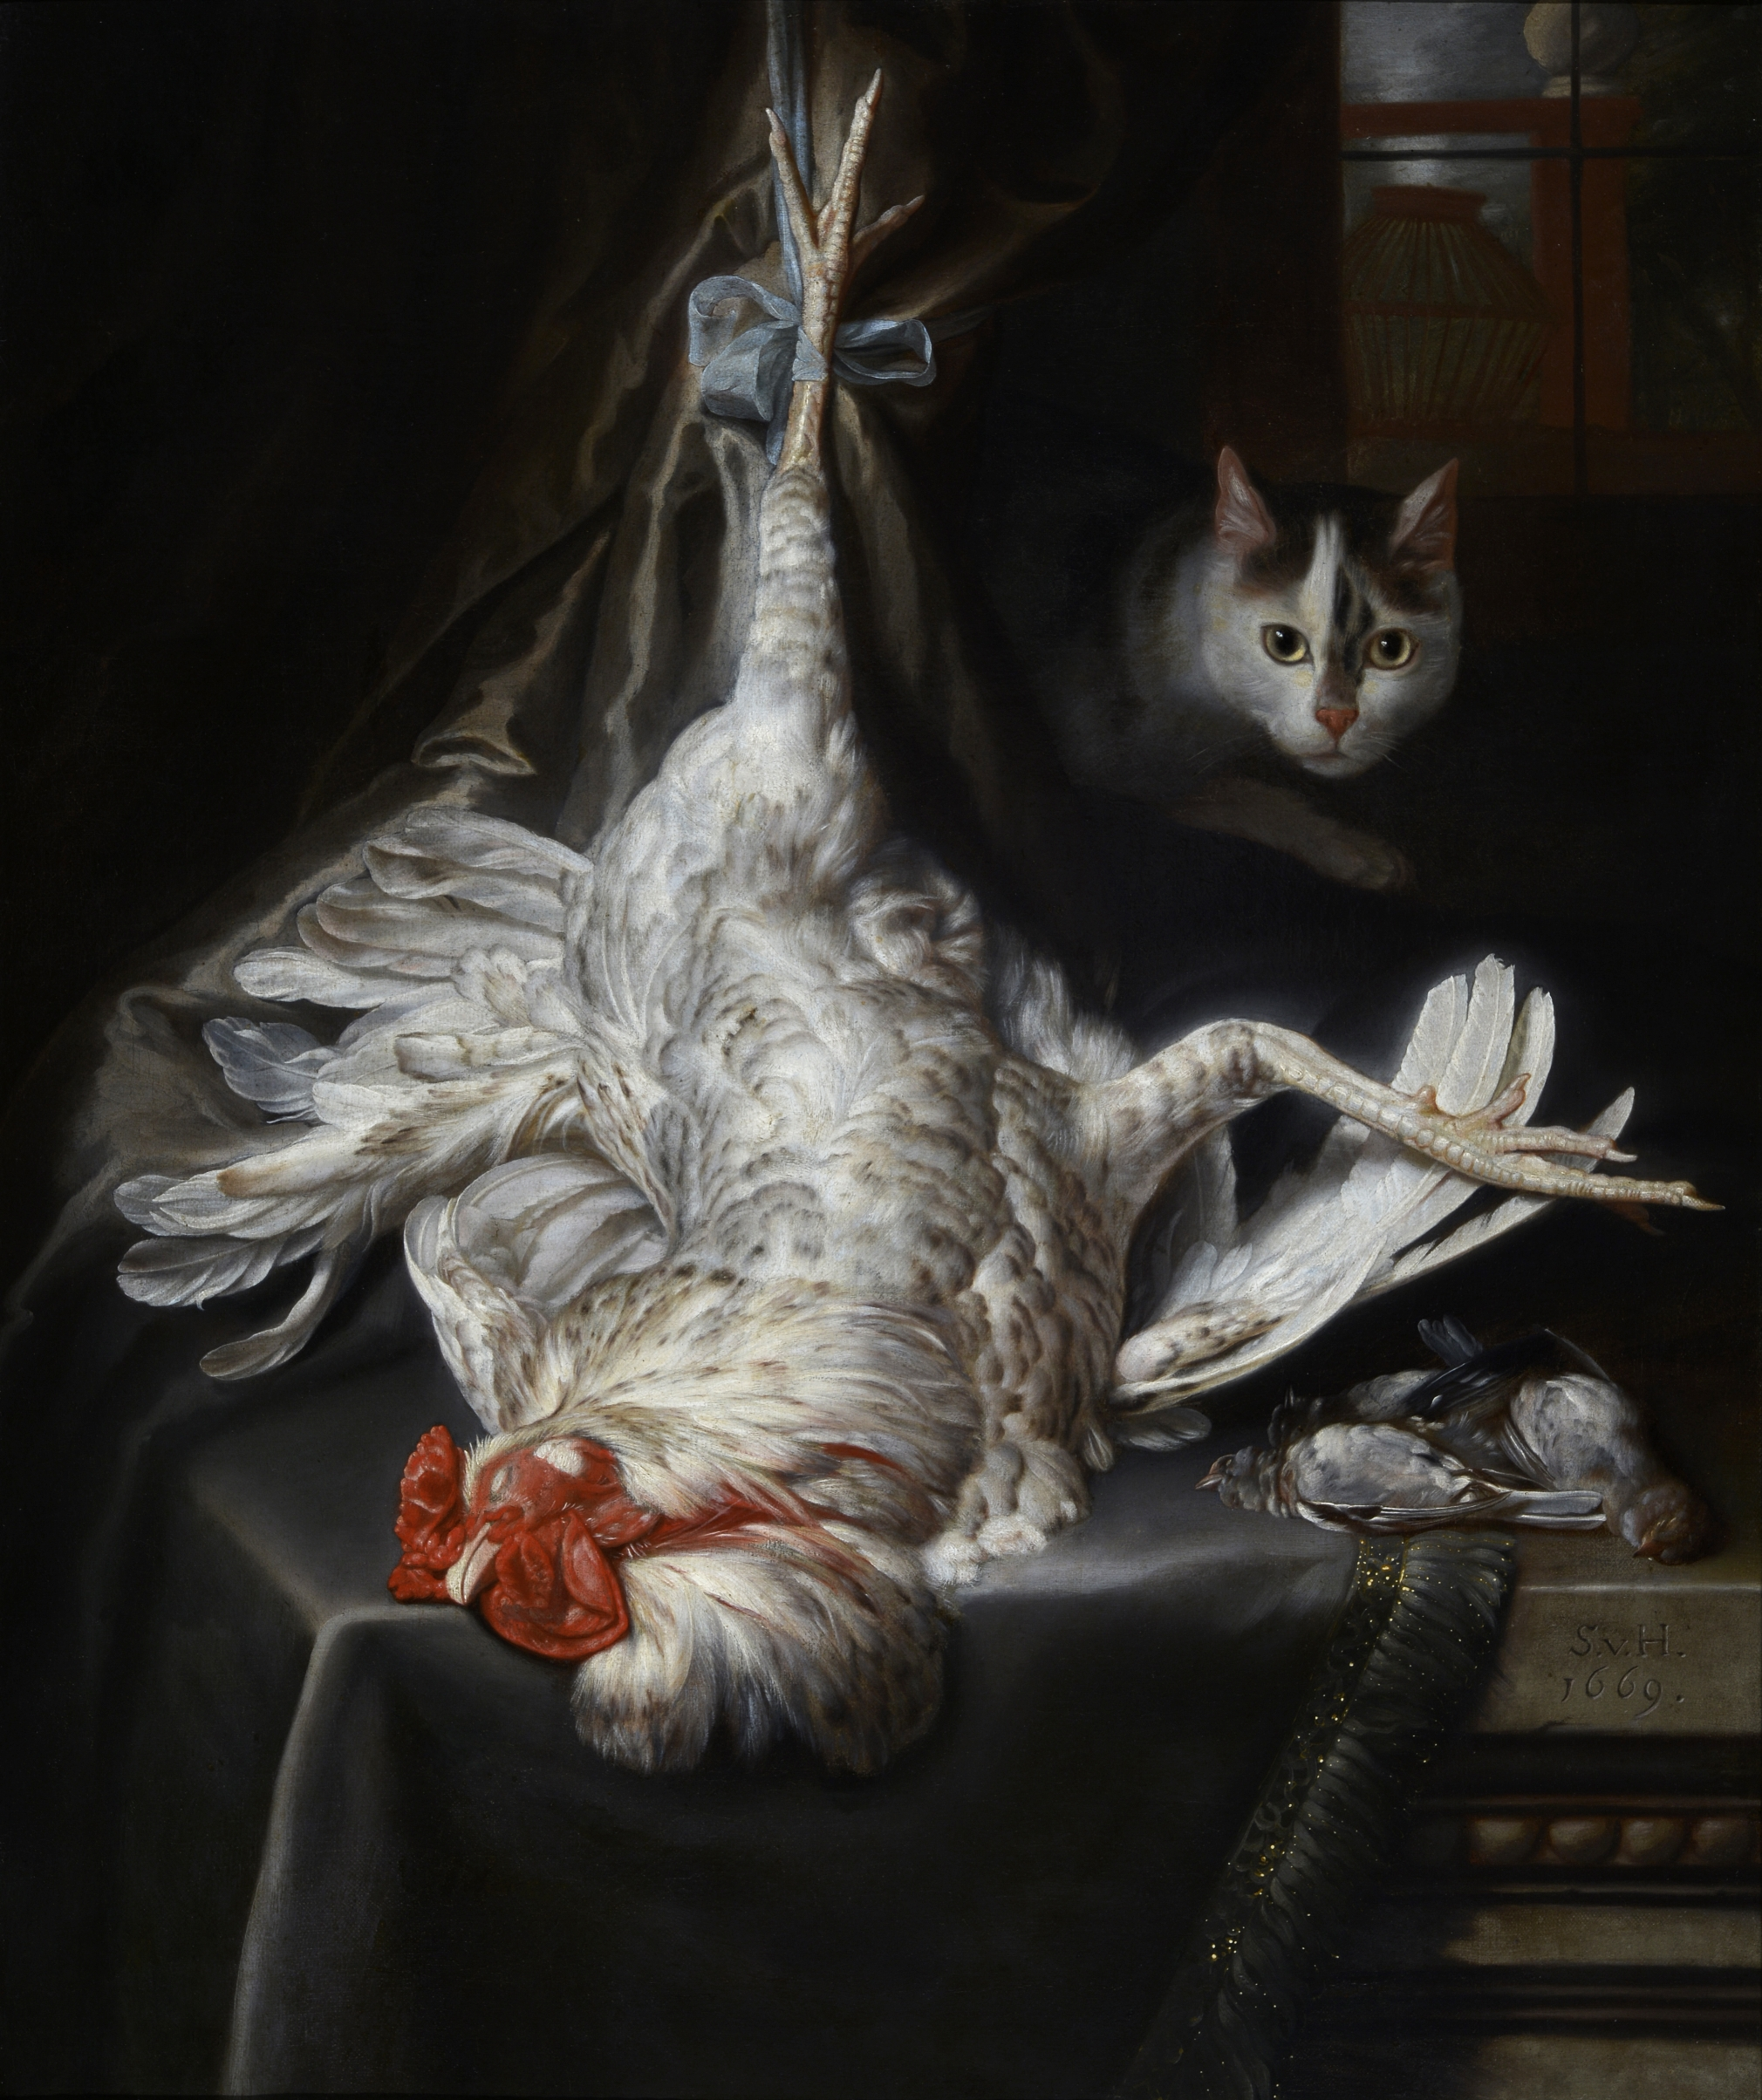 Samuel van Hoogstraten, Bird Still Life with Cat, 1669, Collection of Dordrecht Museum